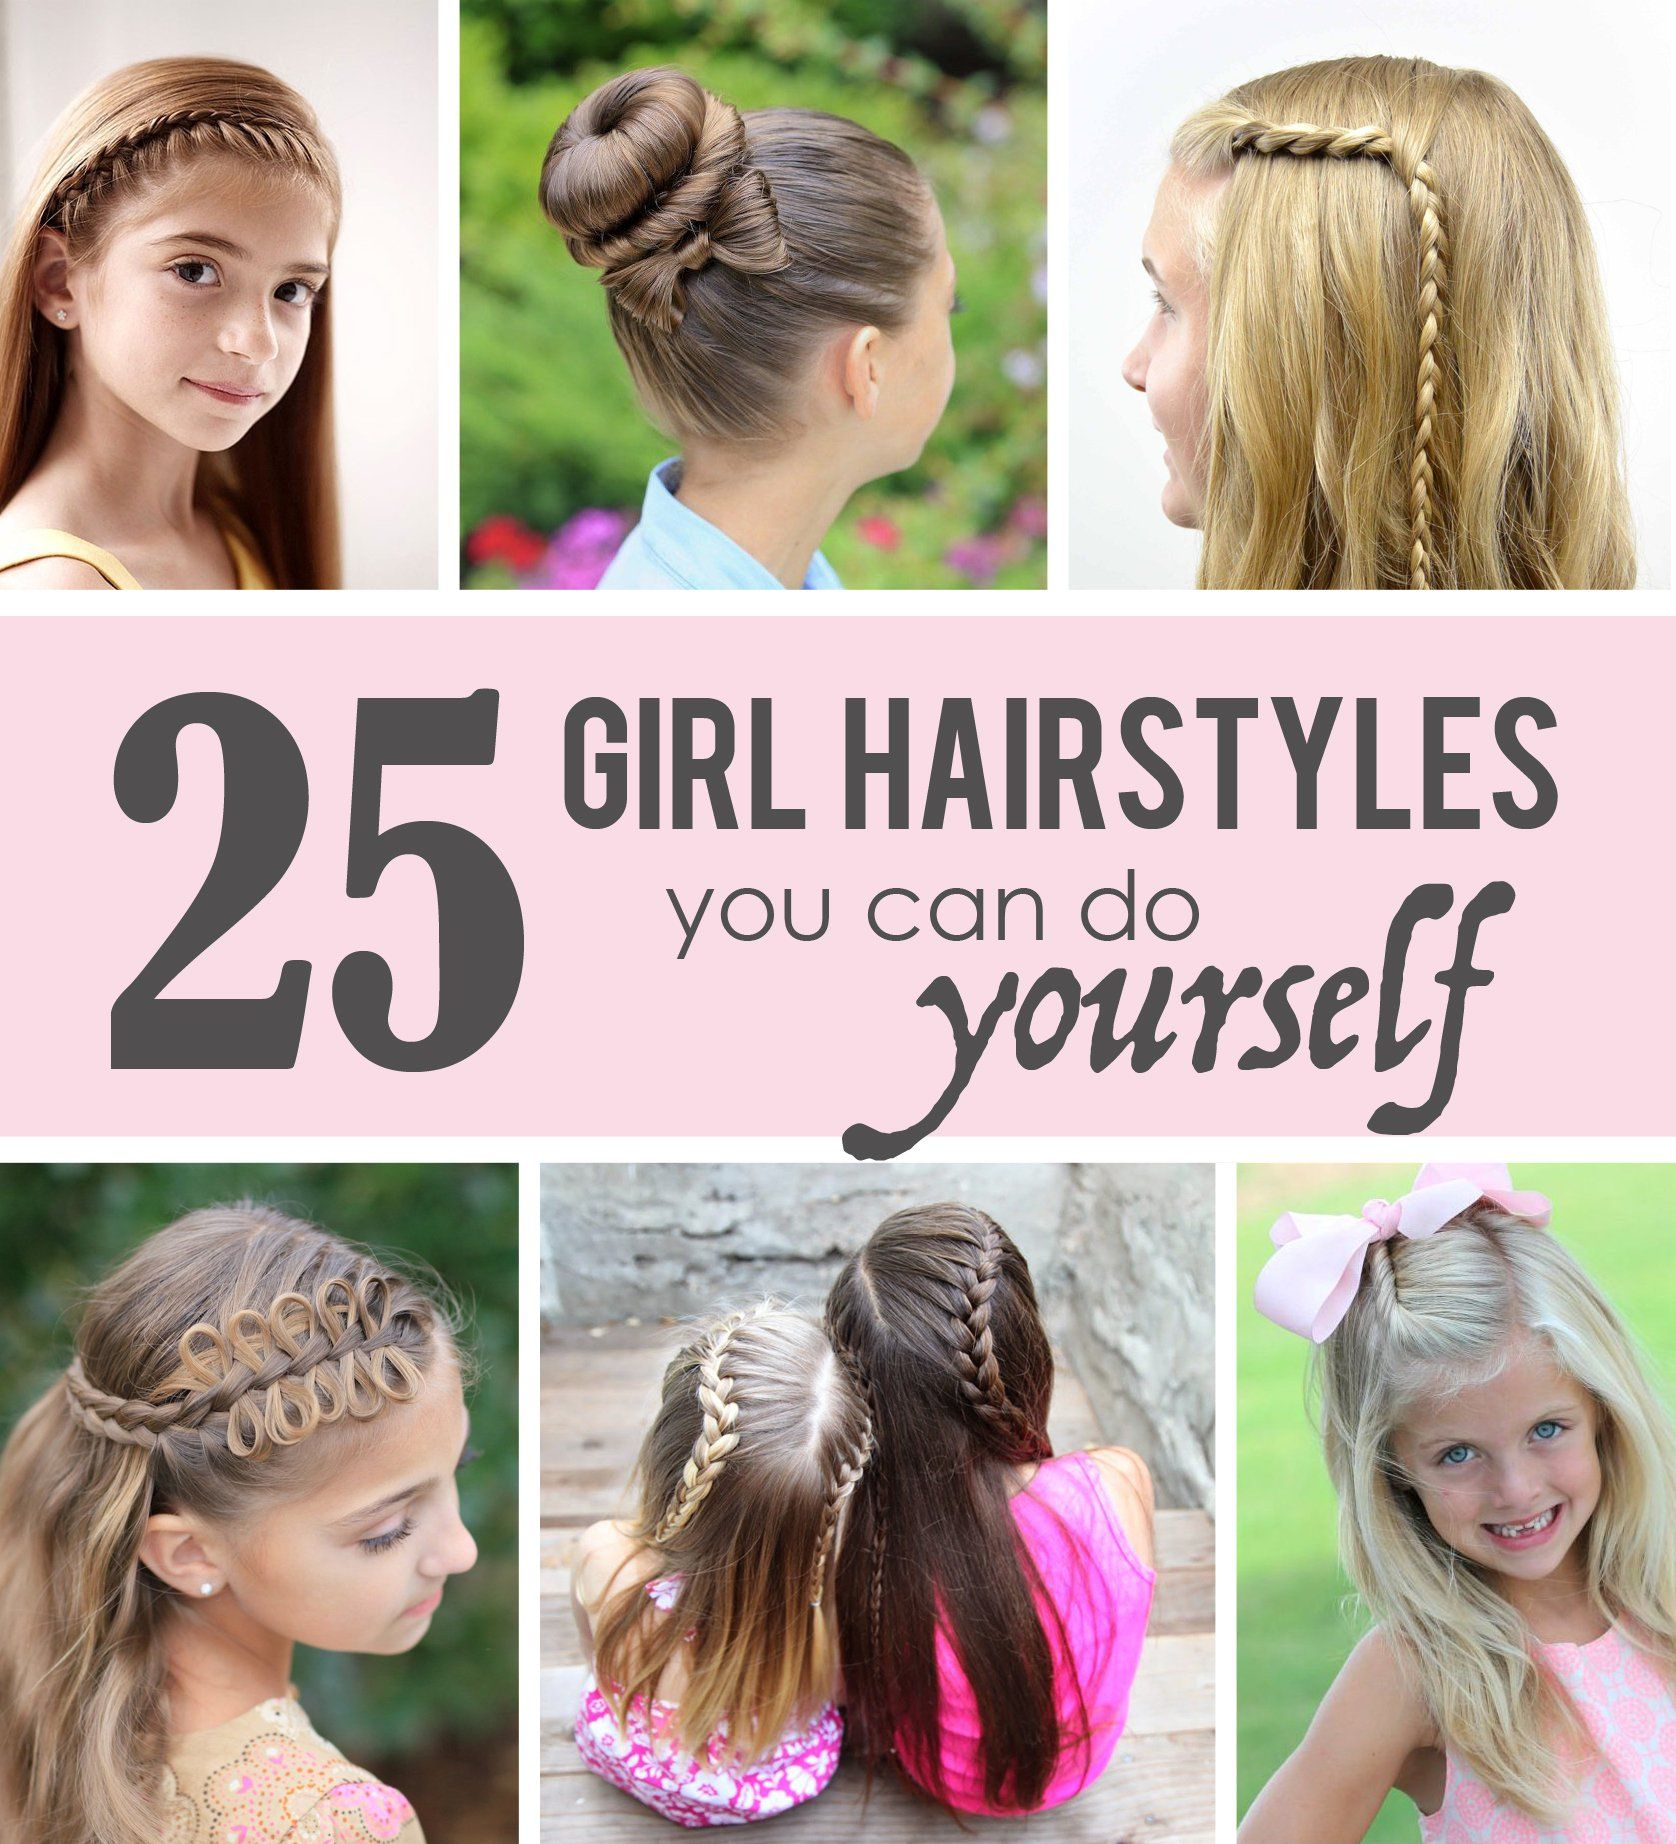 25 little girl hairstylesyou can do yourself! | hair